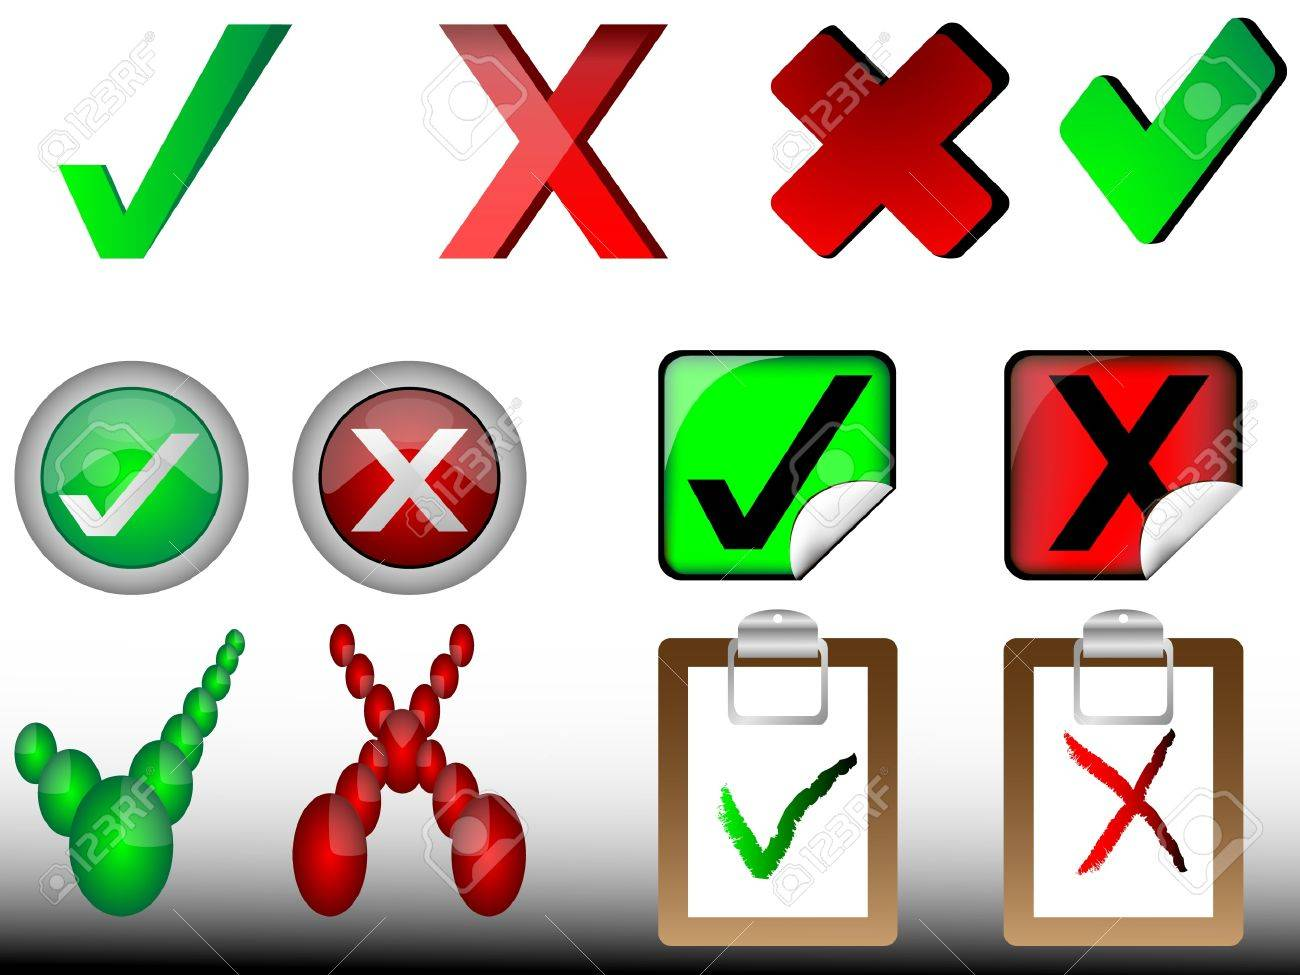 tick and cross signs,right and wrong signs Stock Vector - 11143664